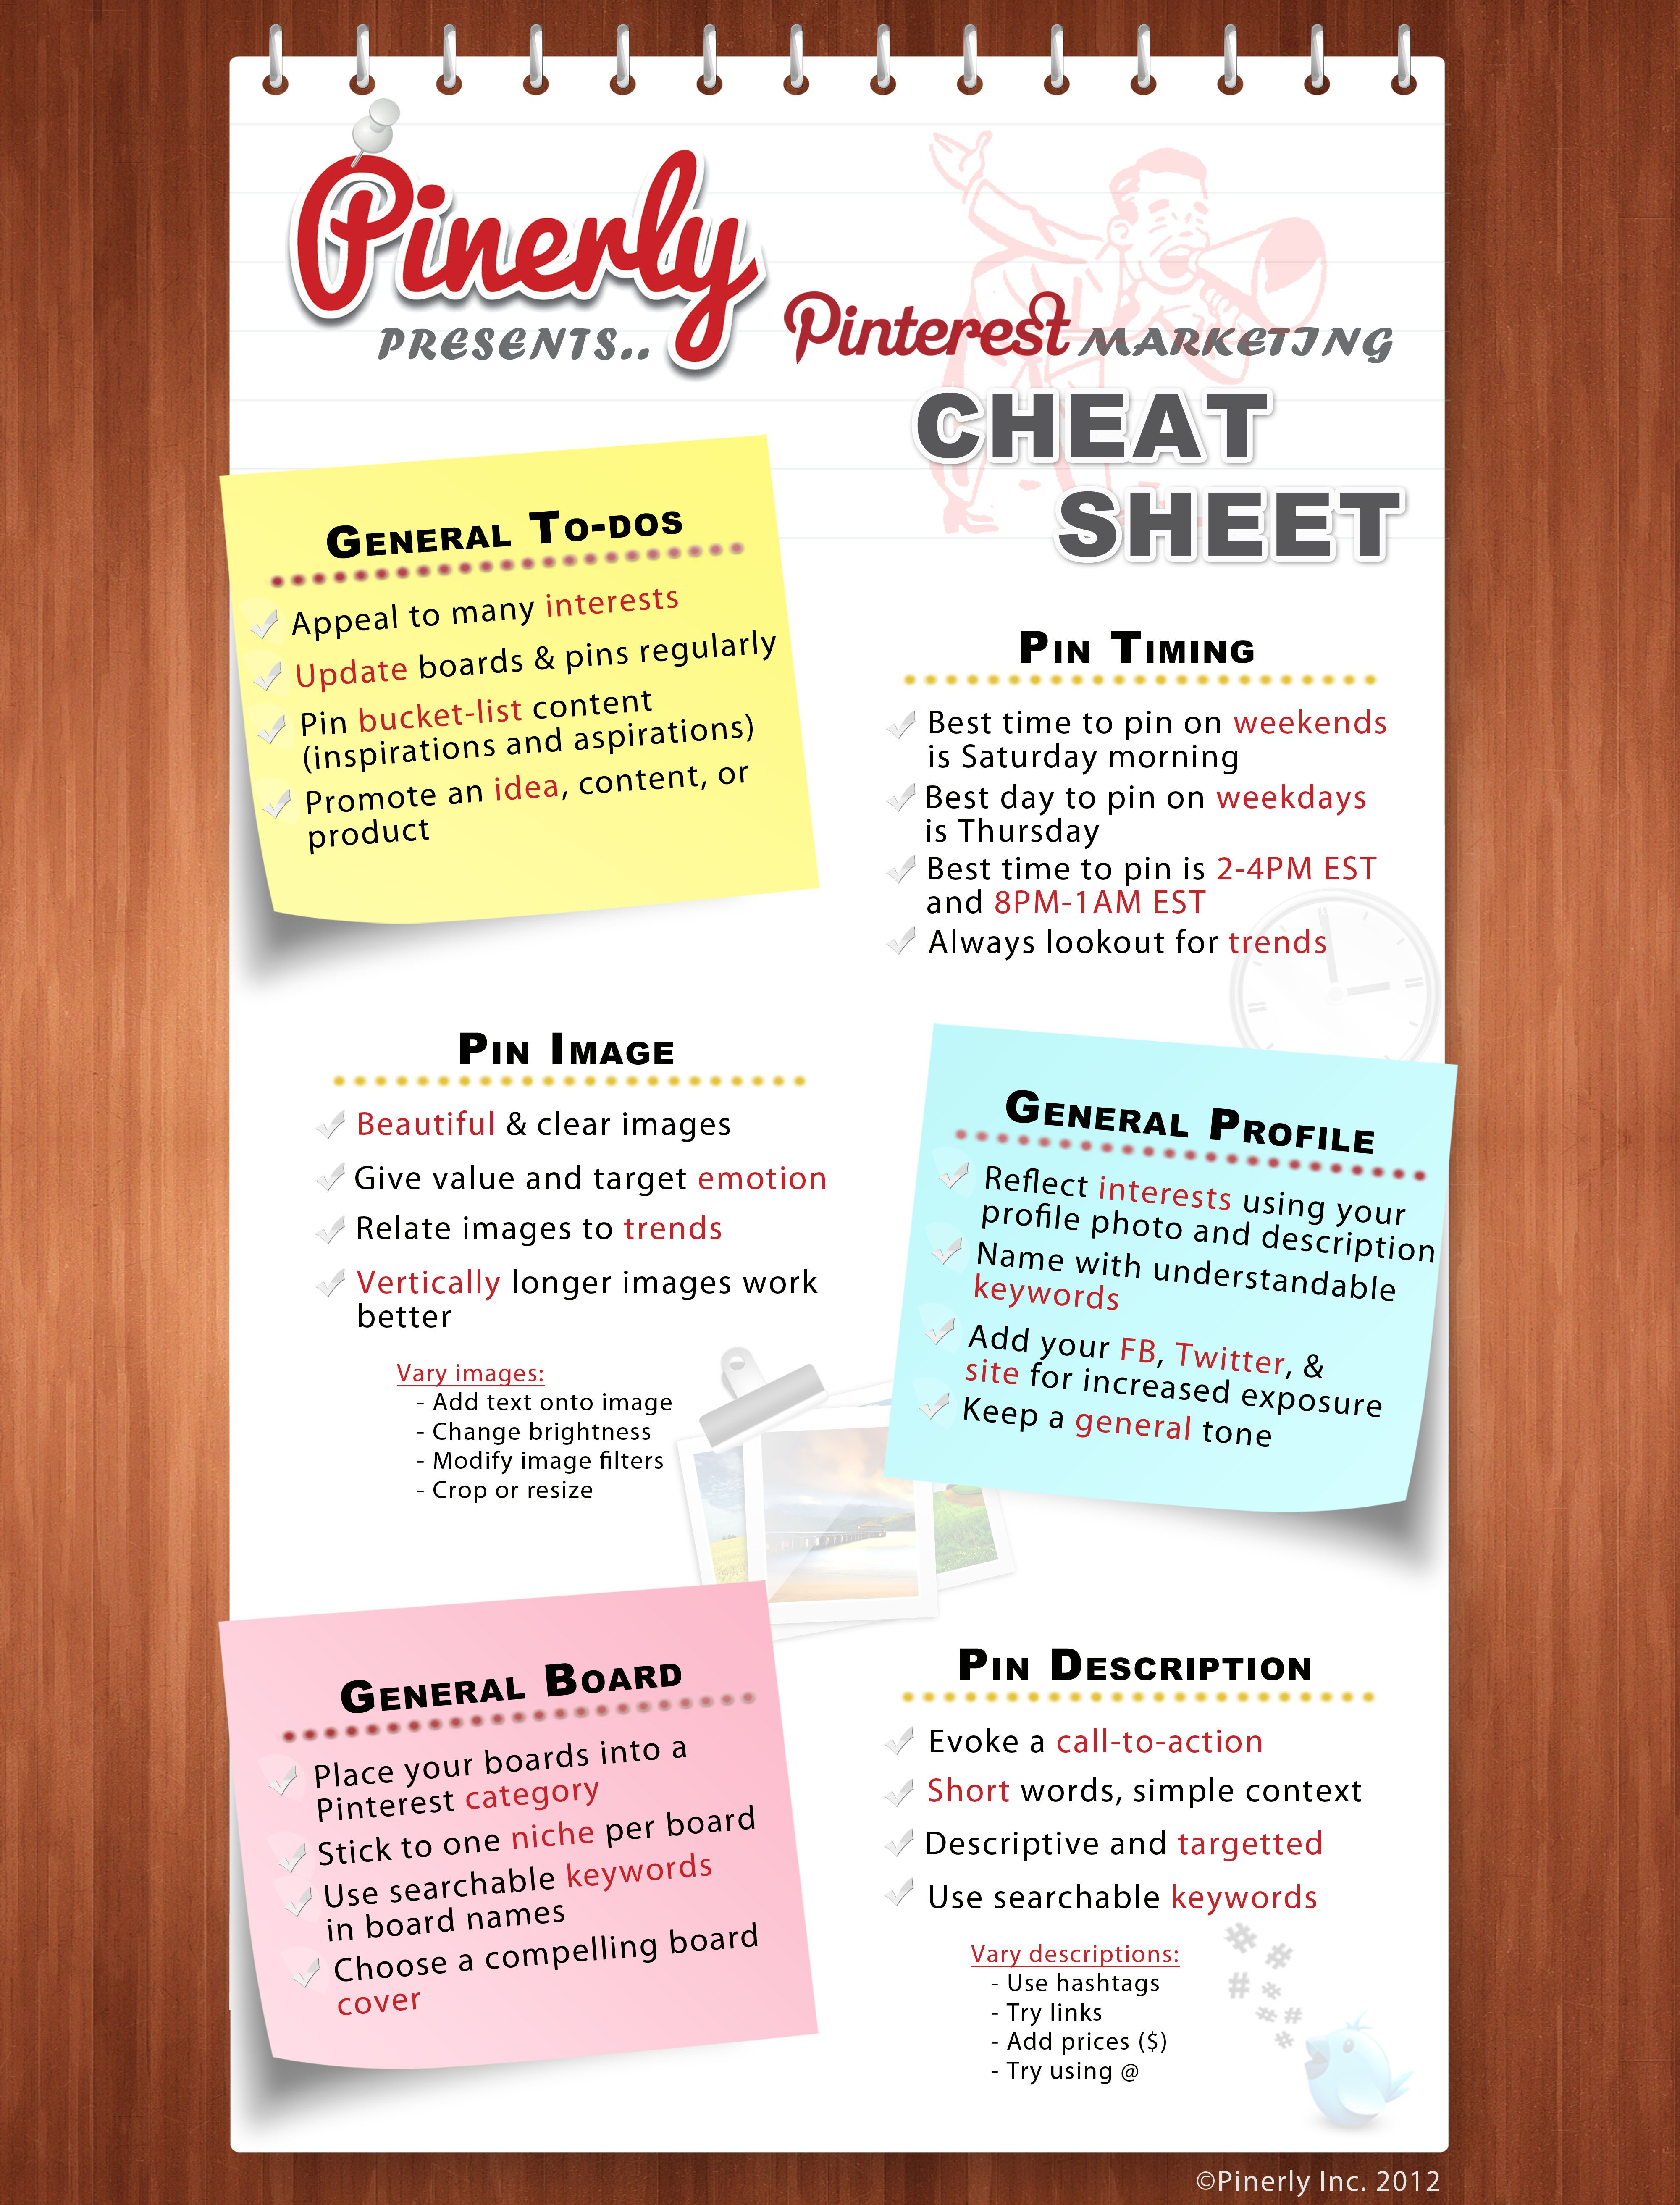 The Ultimate Pinterest Cheat Sheet.